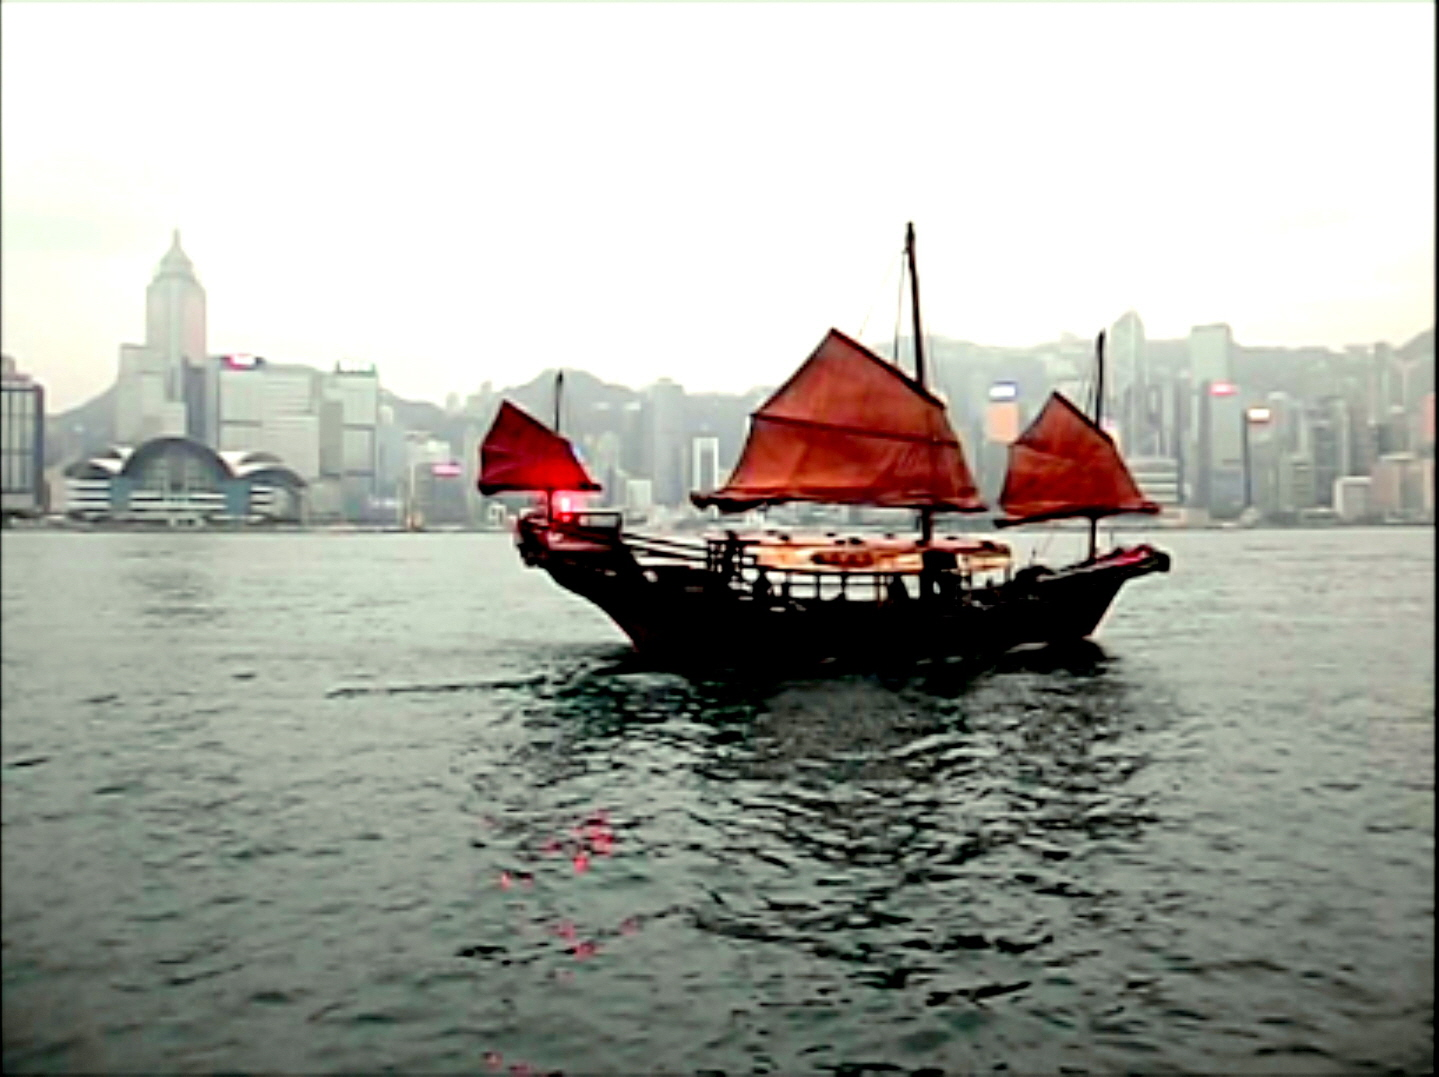 Old Fashioned Junk in Harbor - Hong Kong Skyline (Still taken from Video)